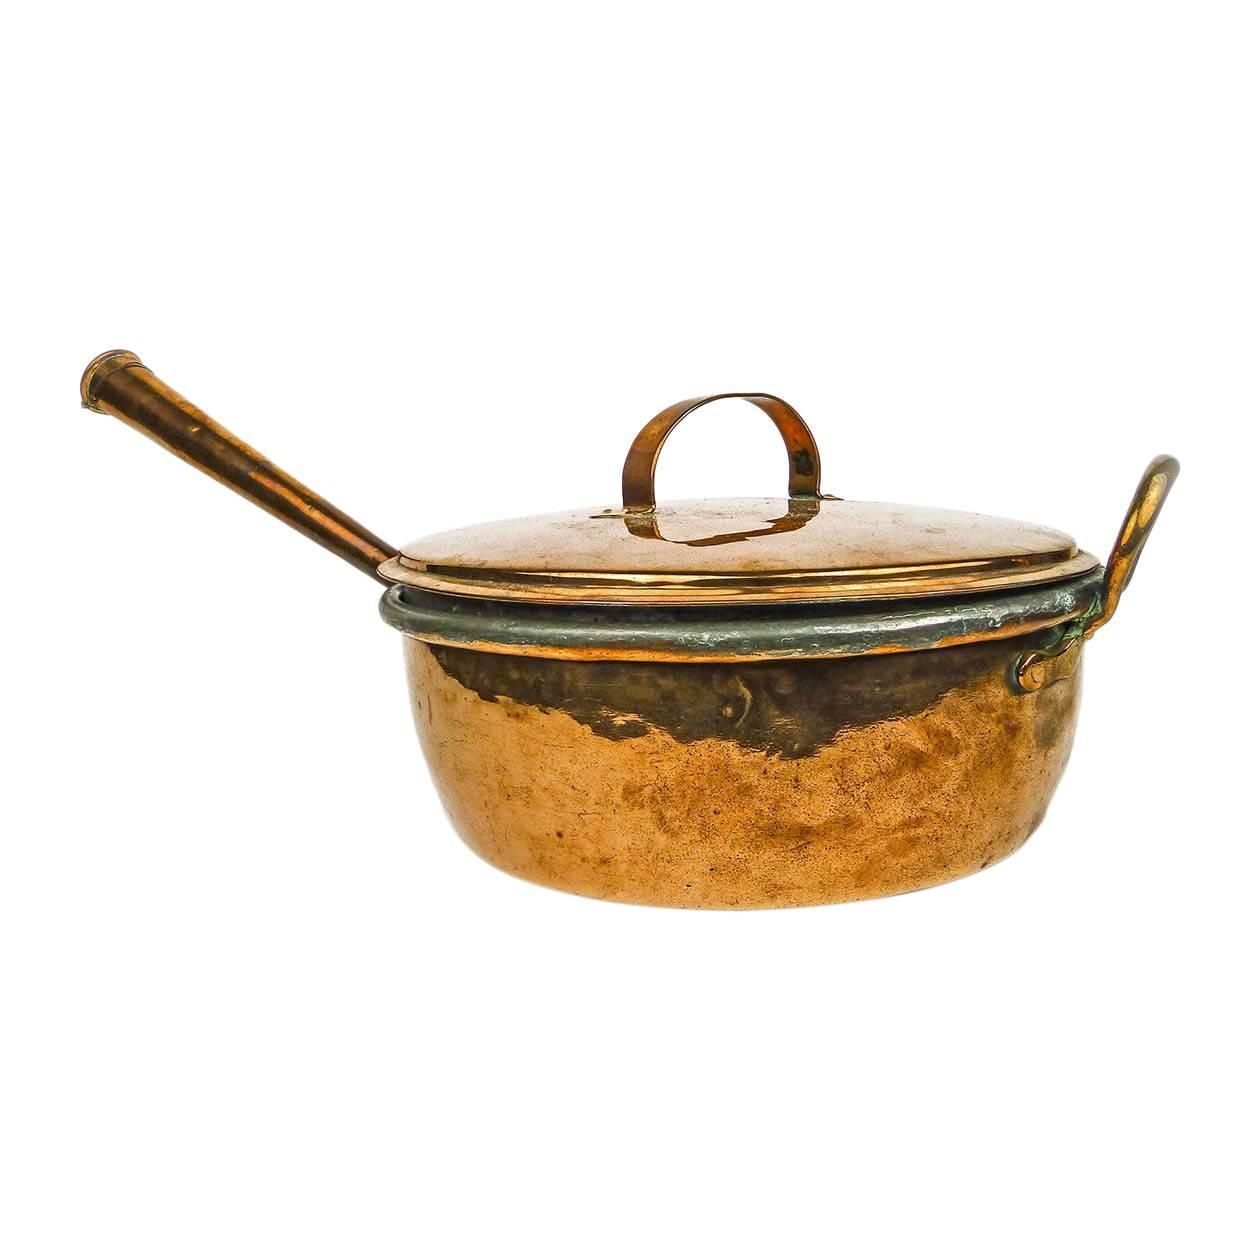 Large English Copper Cooking Pot with Matching Lid, circa 1860 | From a unique collection of antique and modern fireplace tools and chimney pots at https://www.1stdibs.com/furniture/building-garden/fireplace-tools-chimney-pots/